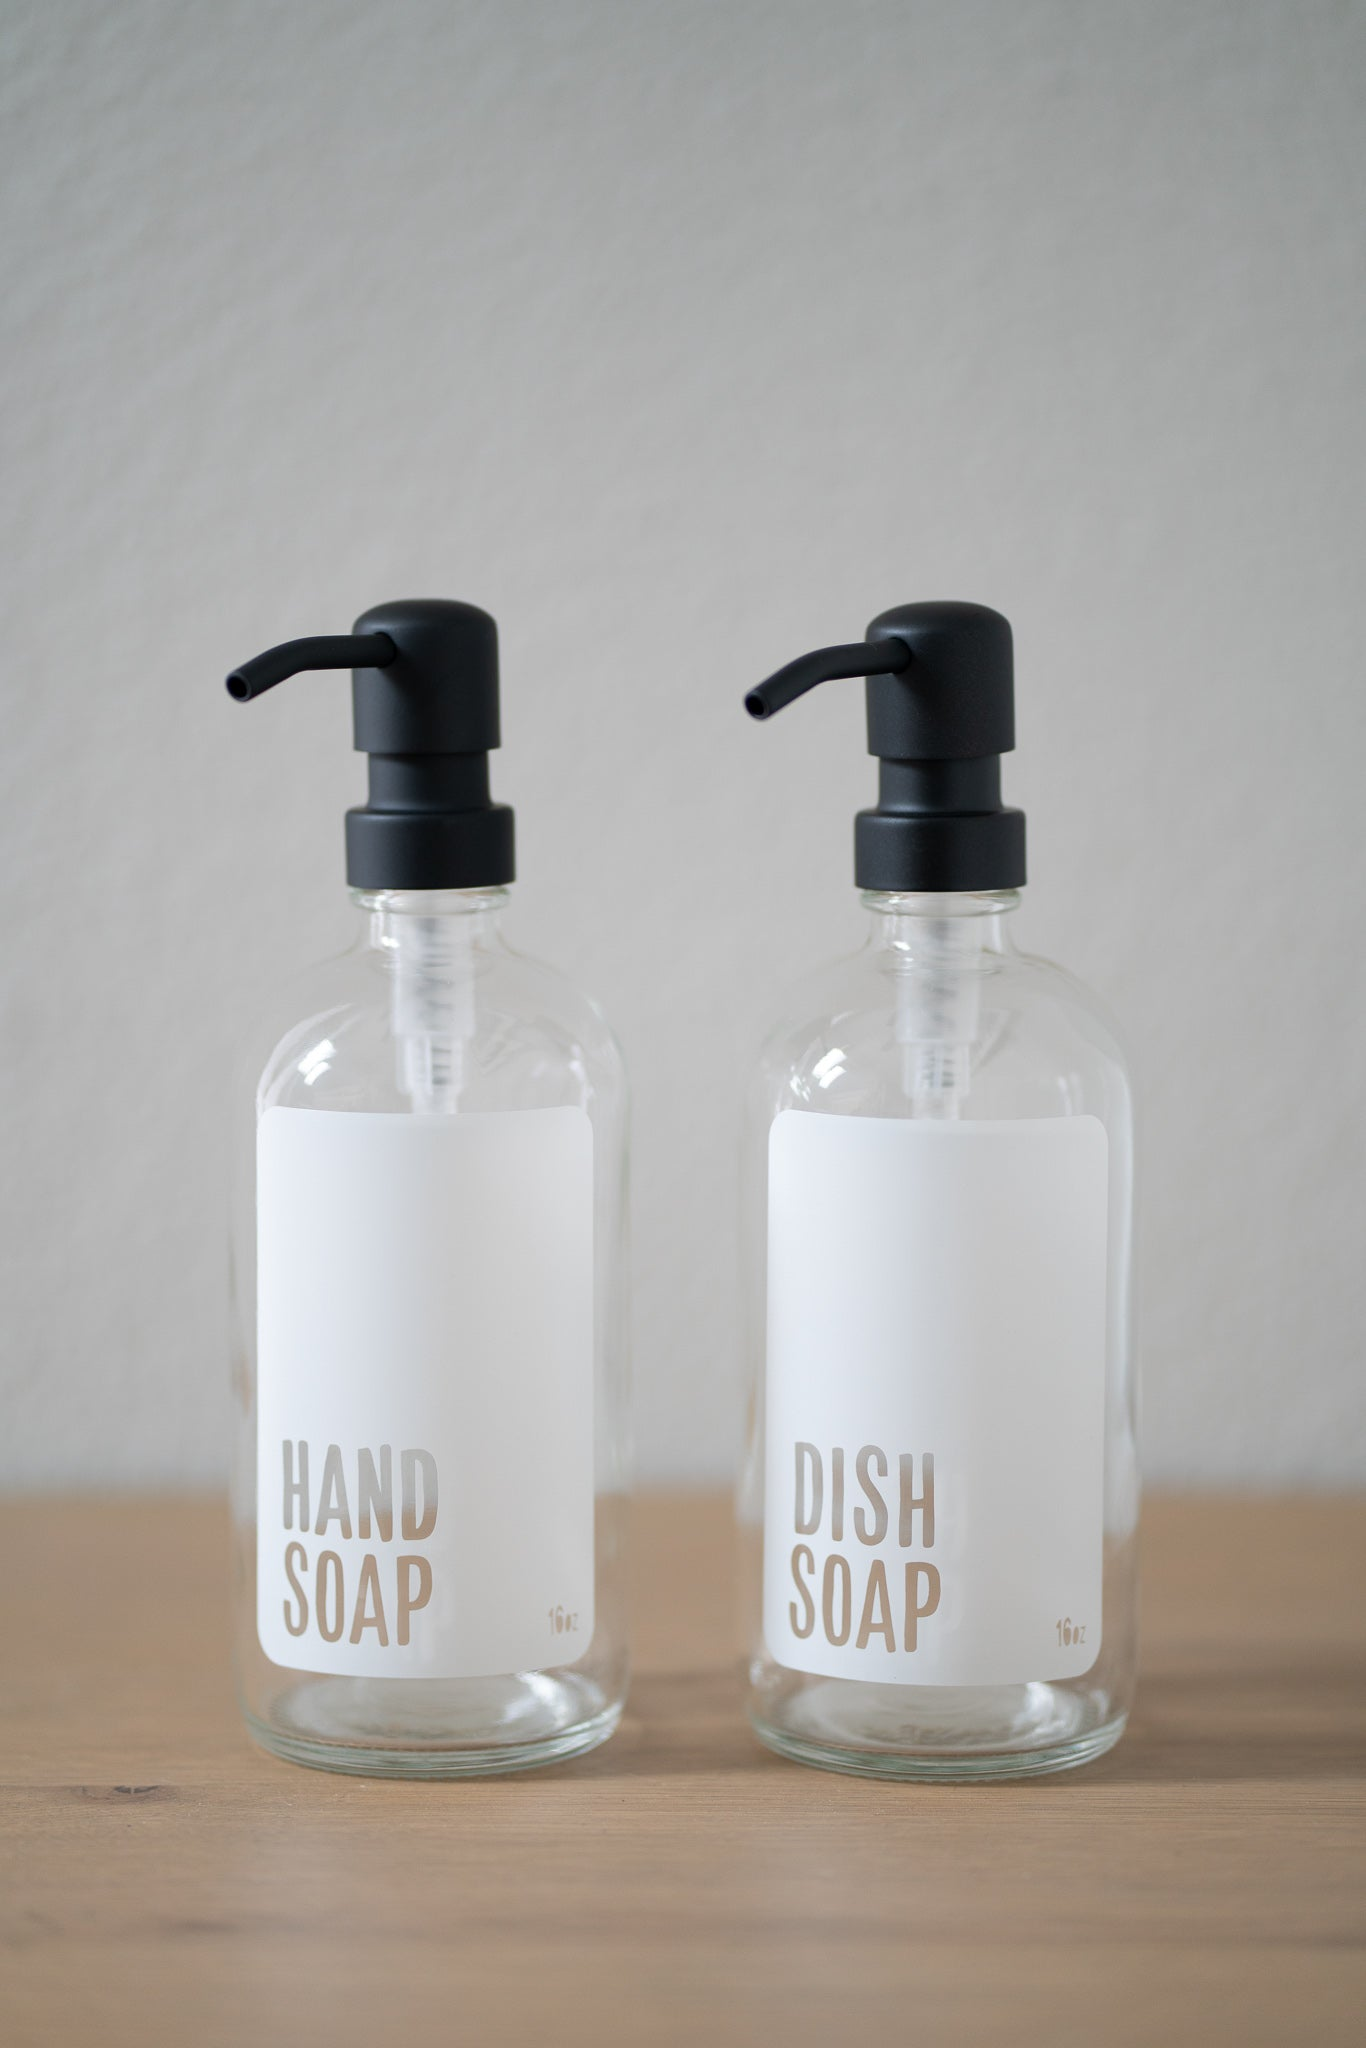 Imperfect Clear Glass Modern White Hand Soap or Dish Soap Dispenser